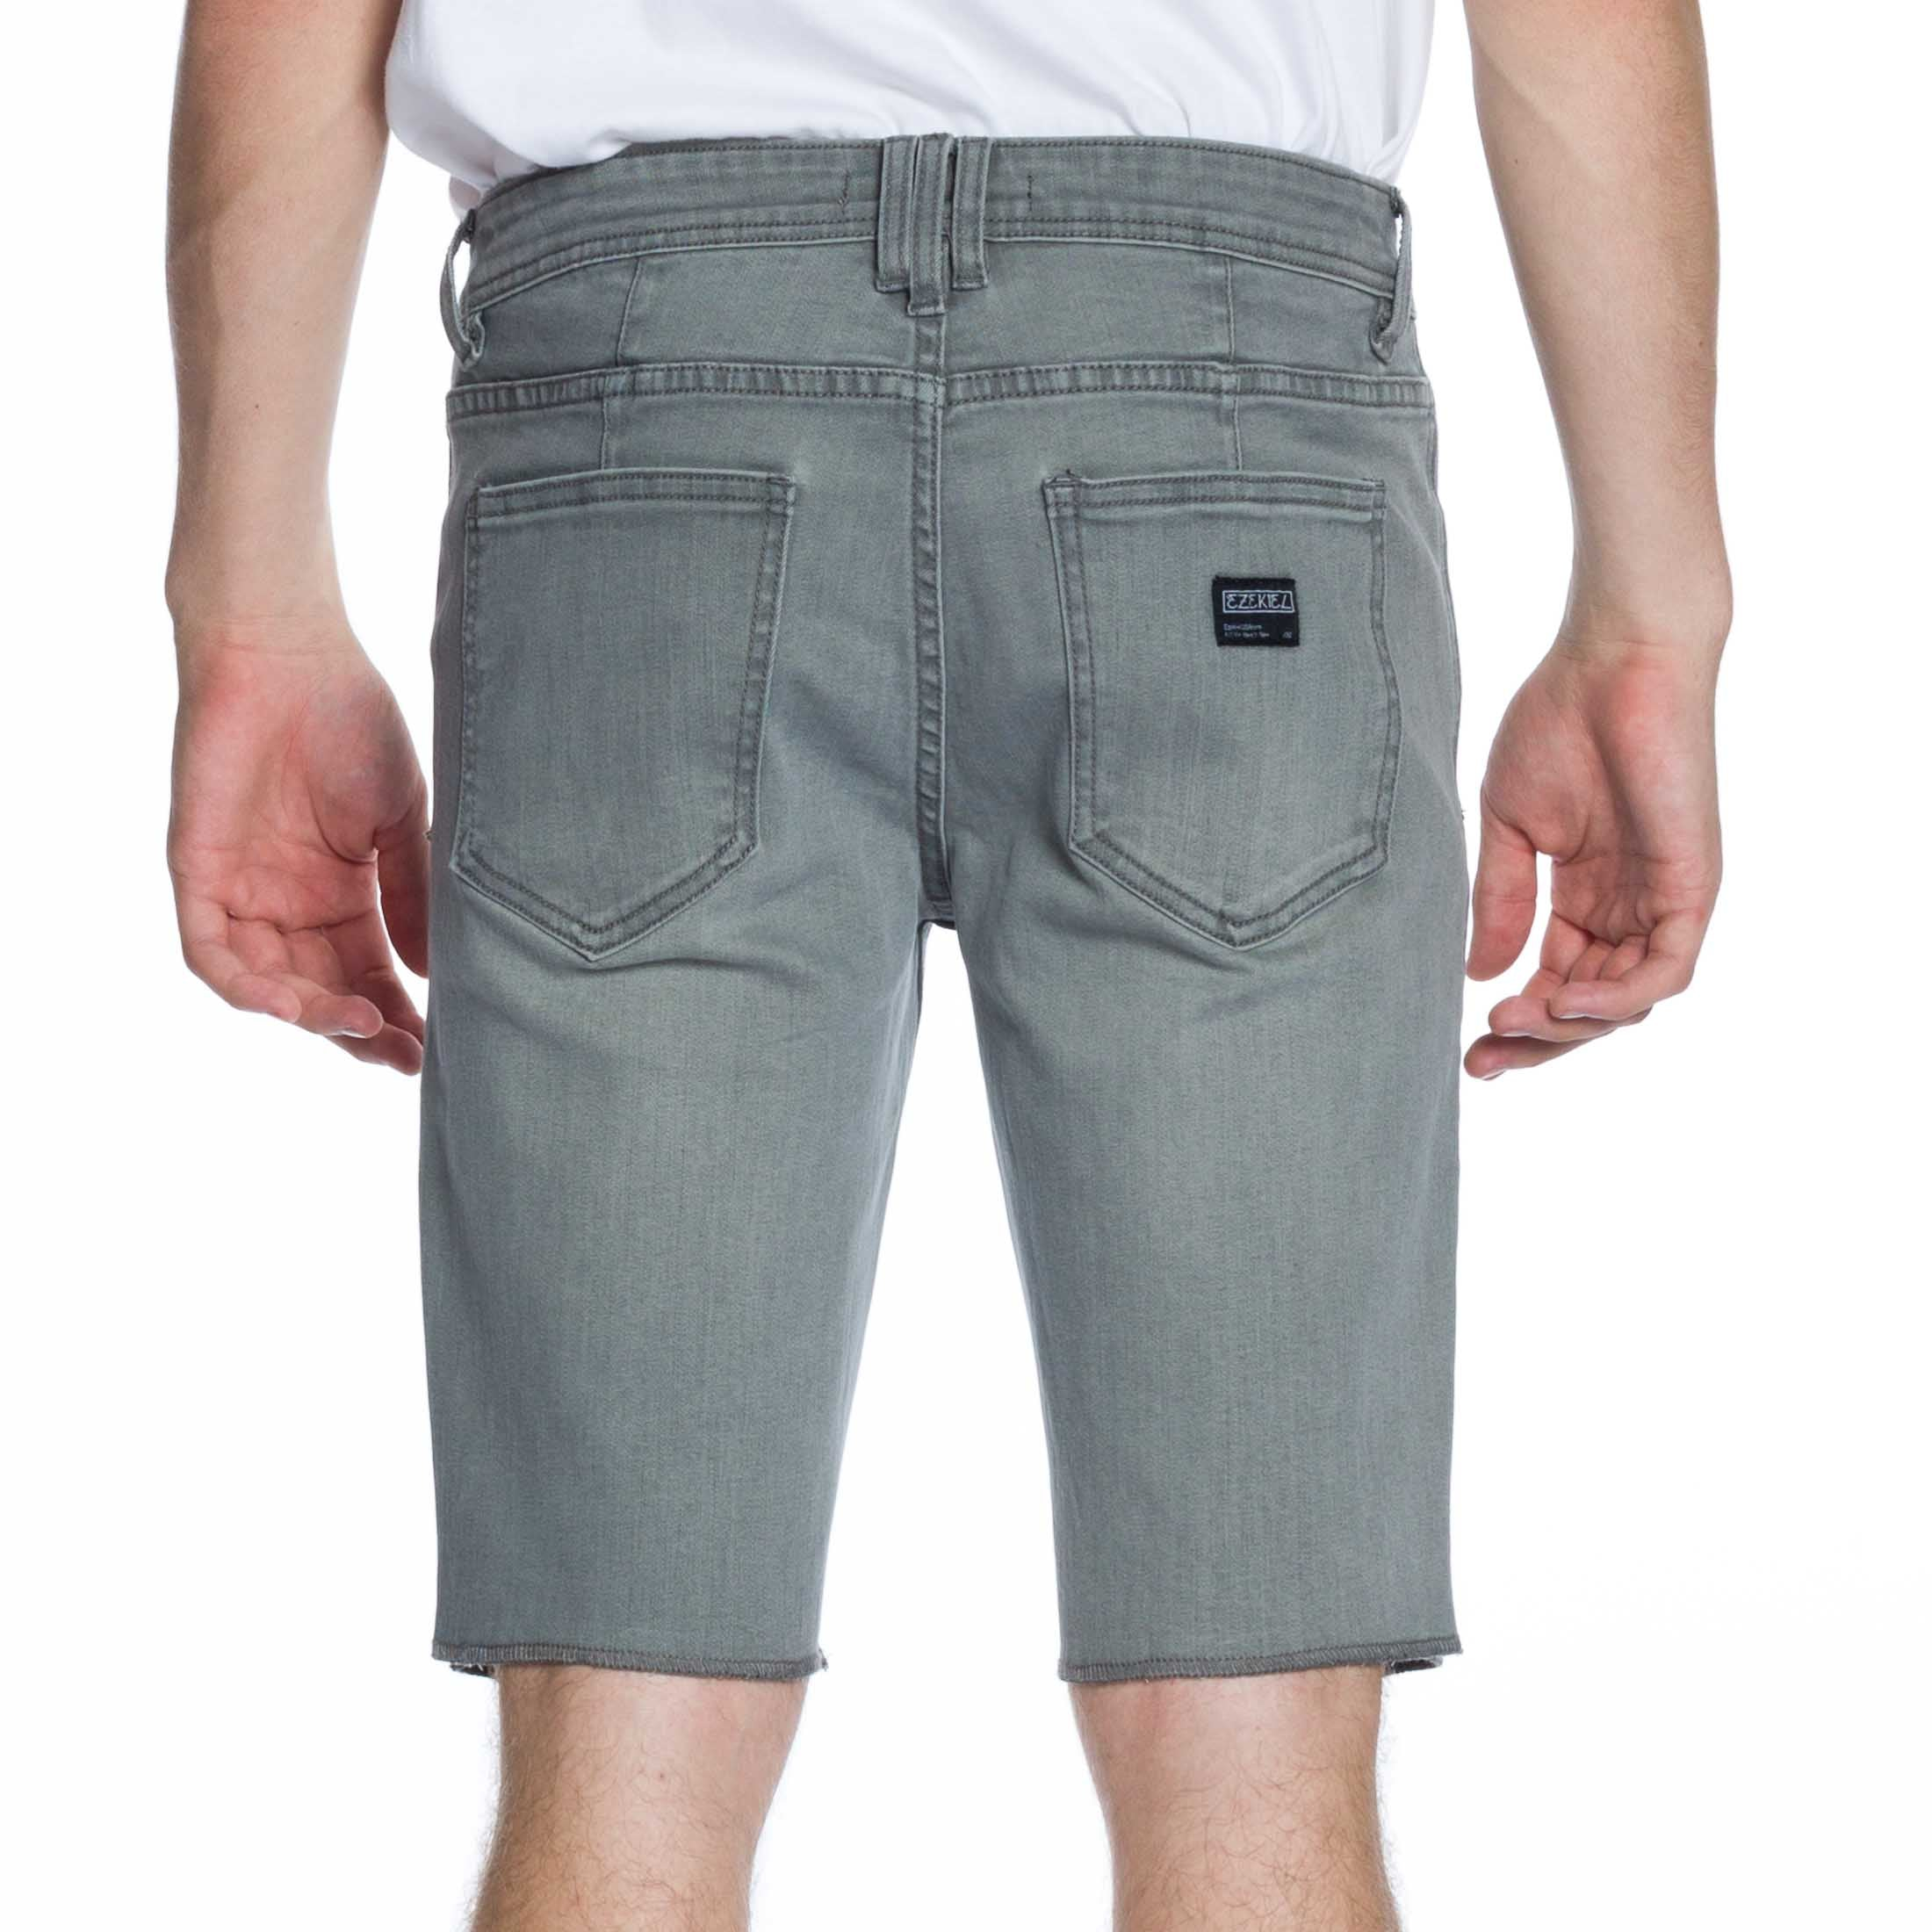 Now Denim Short - Heath. Grey - Ezekiel Clothing